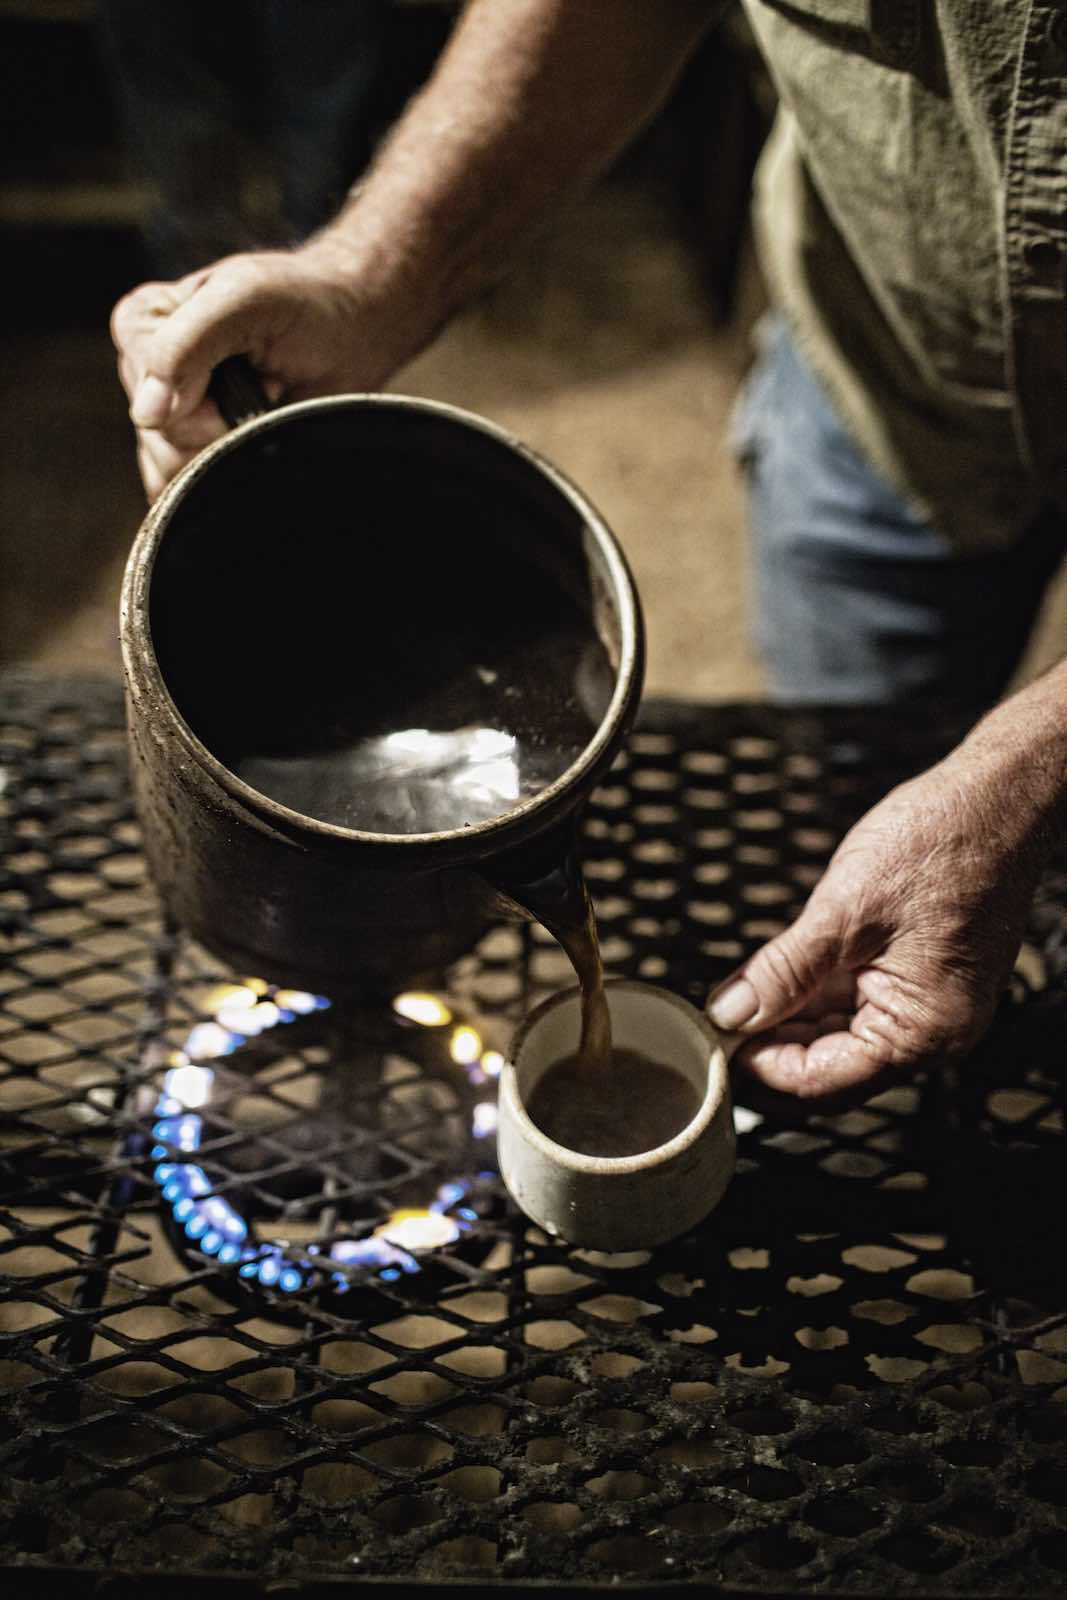 Jody Horton Photography - Coffee heating on a stove in a pitcher and pouring into a small mug.